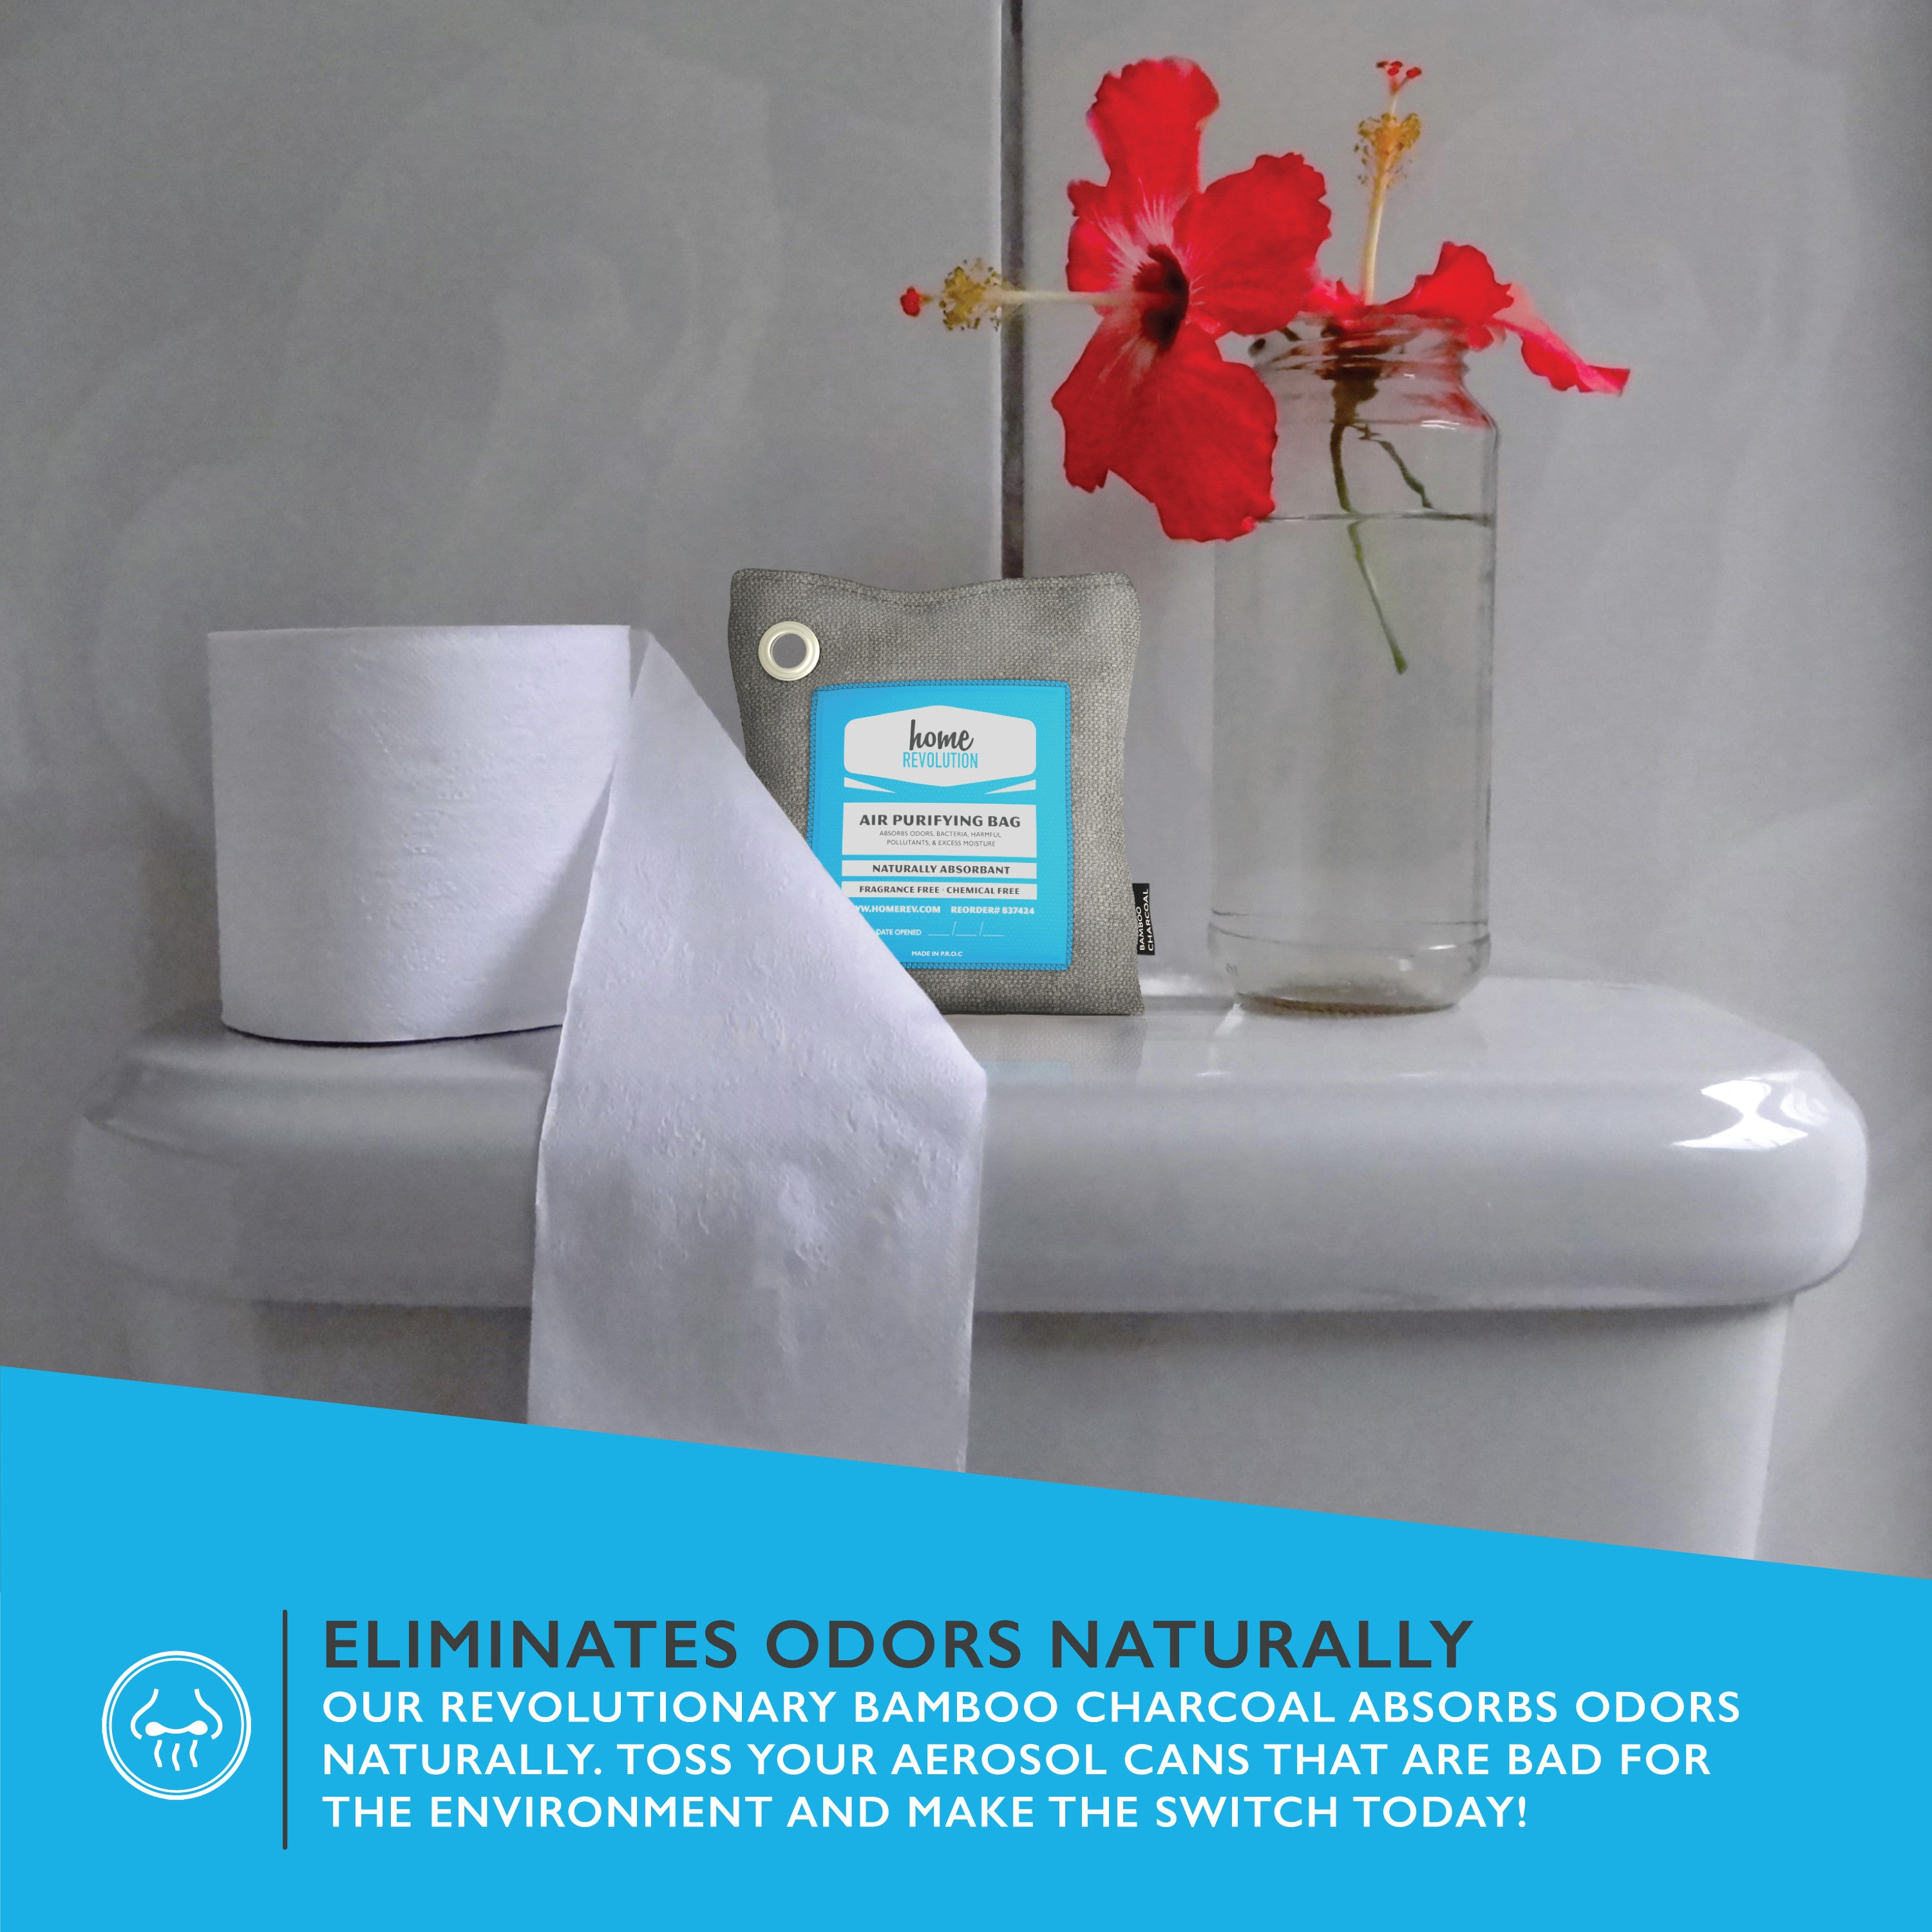 Air Purifying Bag Natural Odor Remover Made From Bamboo Charcoal - Bathroom odor remover